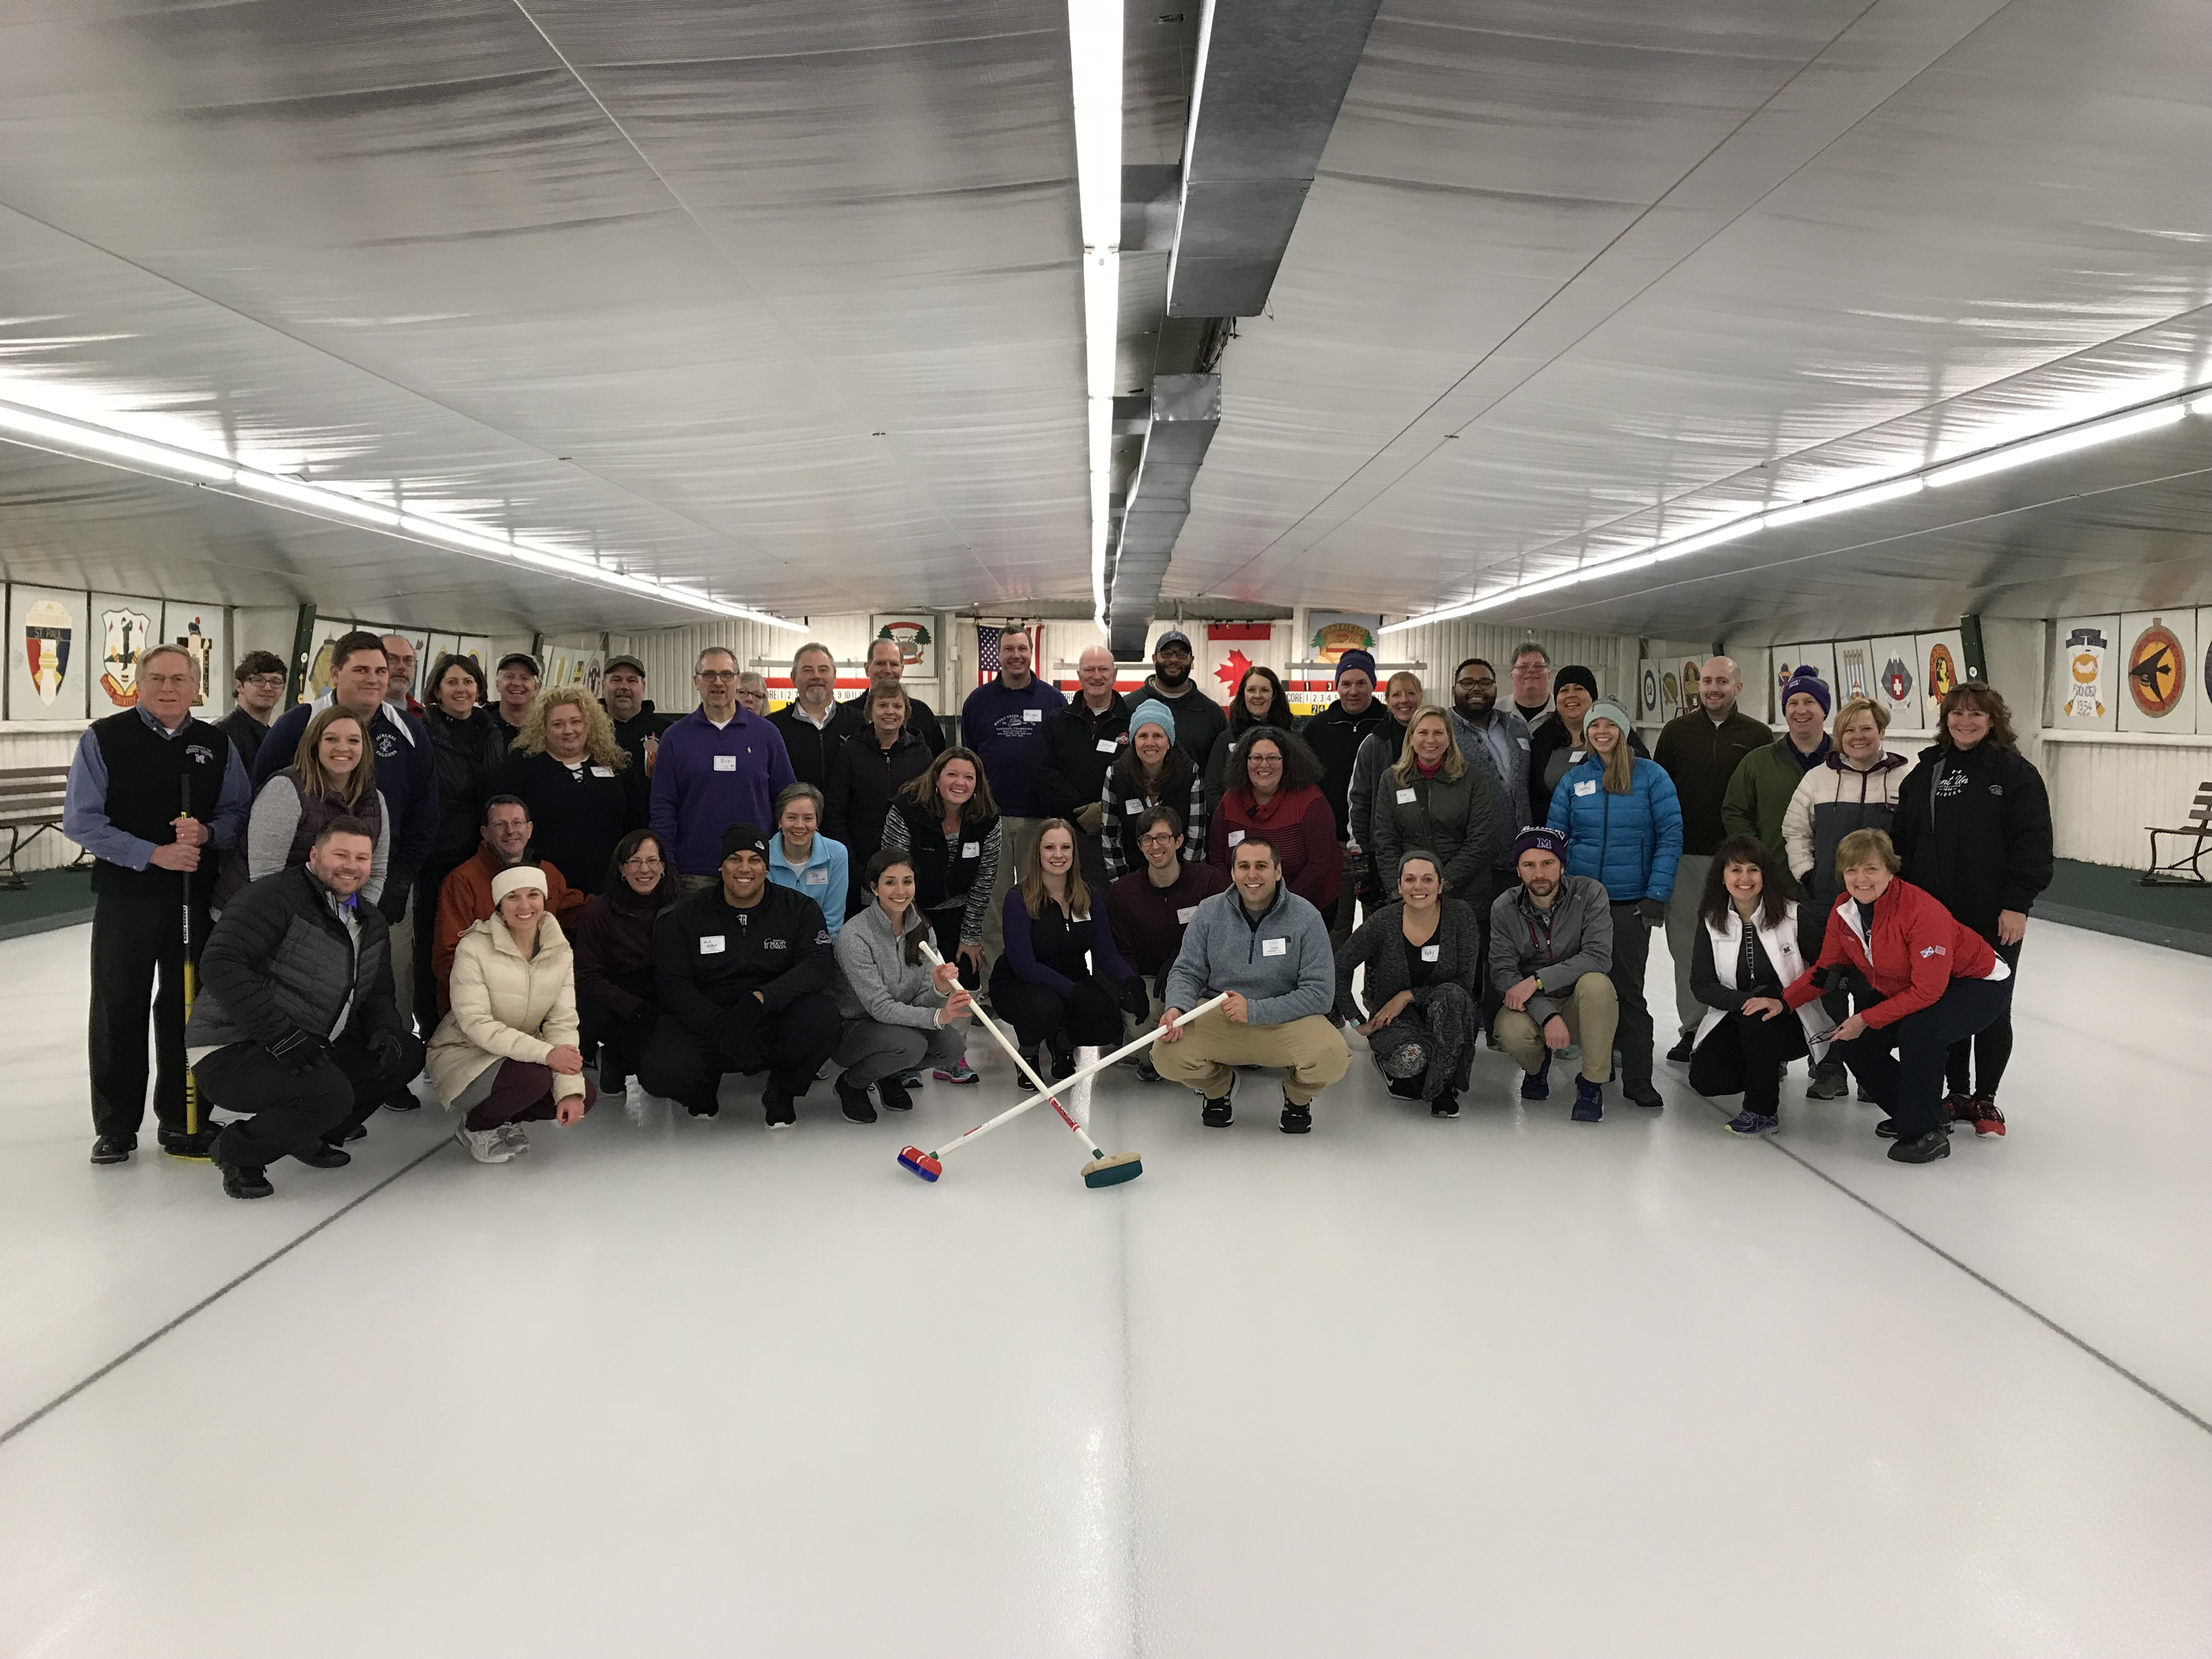 Curling 101 Group Photo